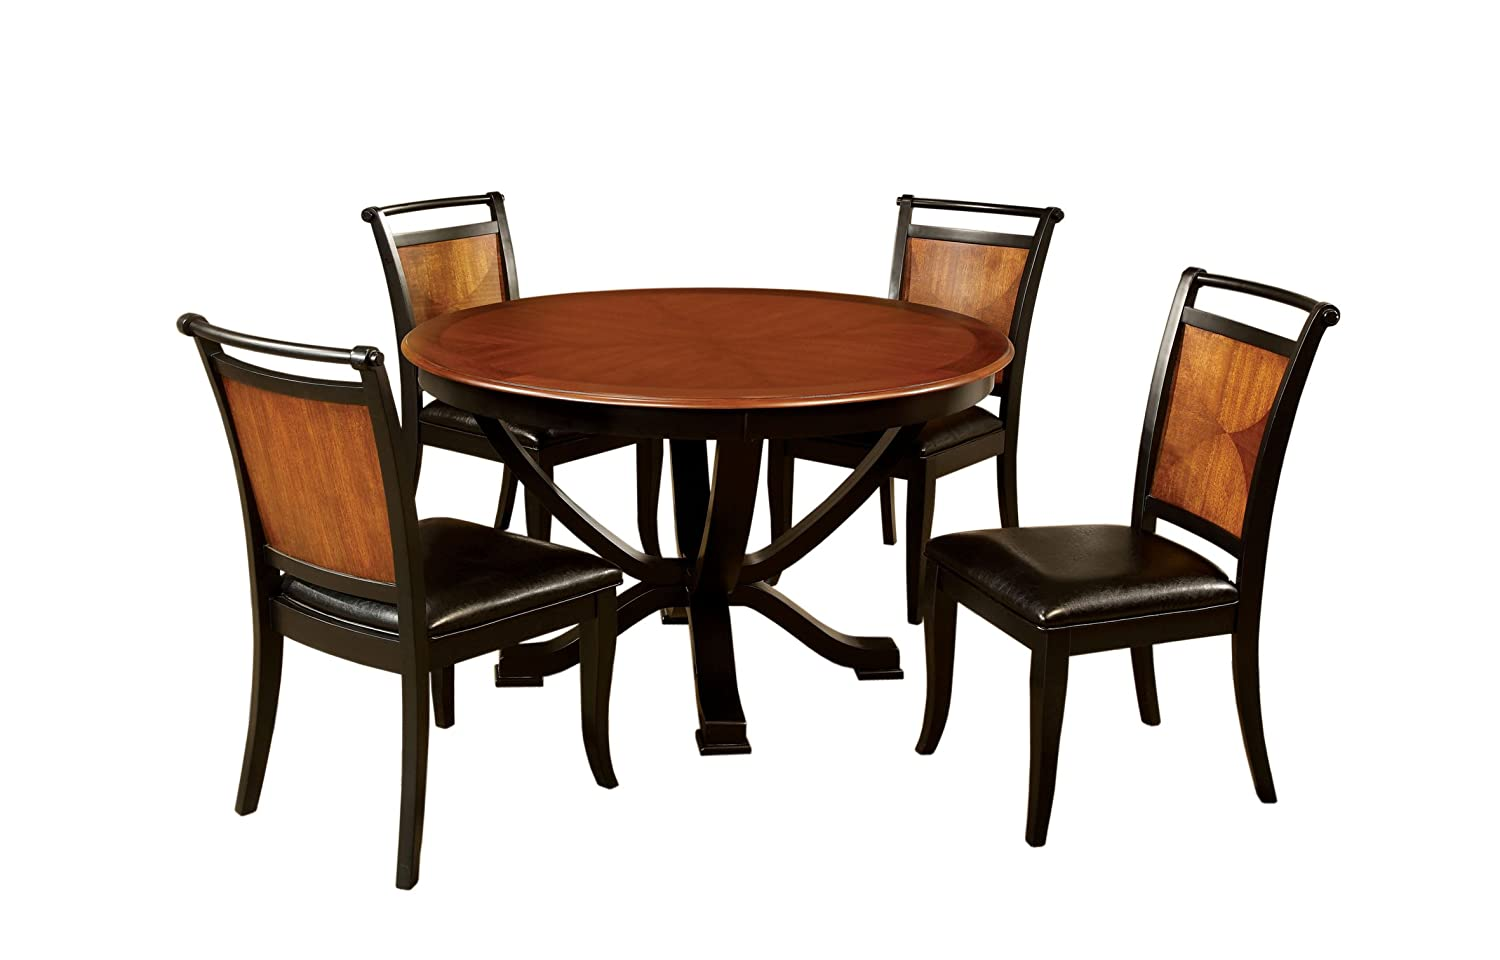 Amazon com furniture of america sahrifa 5 piece duotone round dining table set acacia and black finish table chair sets